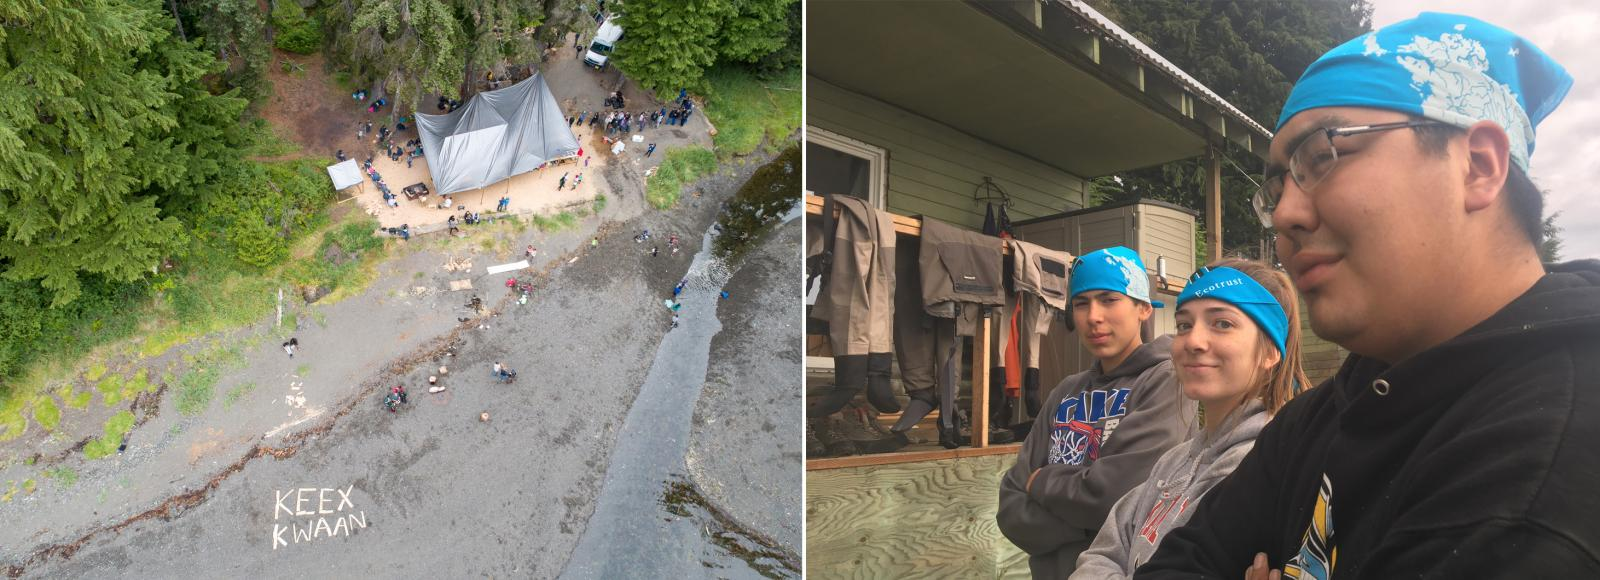 A diptych image. The left image is an aerial photograph showing 2-3 dozen people dotted around a tent-like structure in the clearing of trees. The words